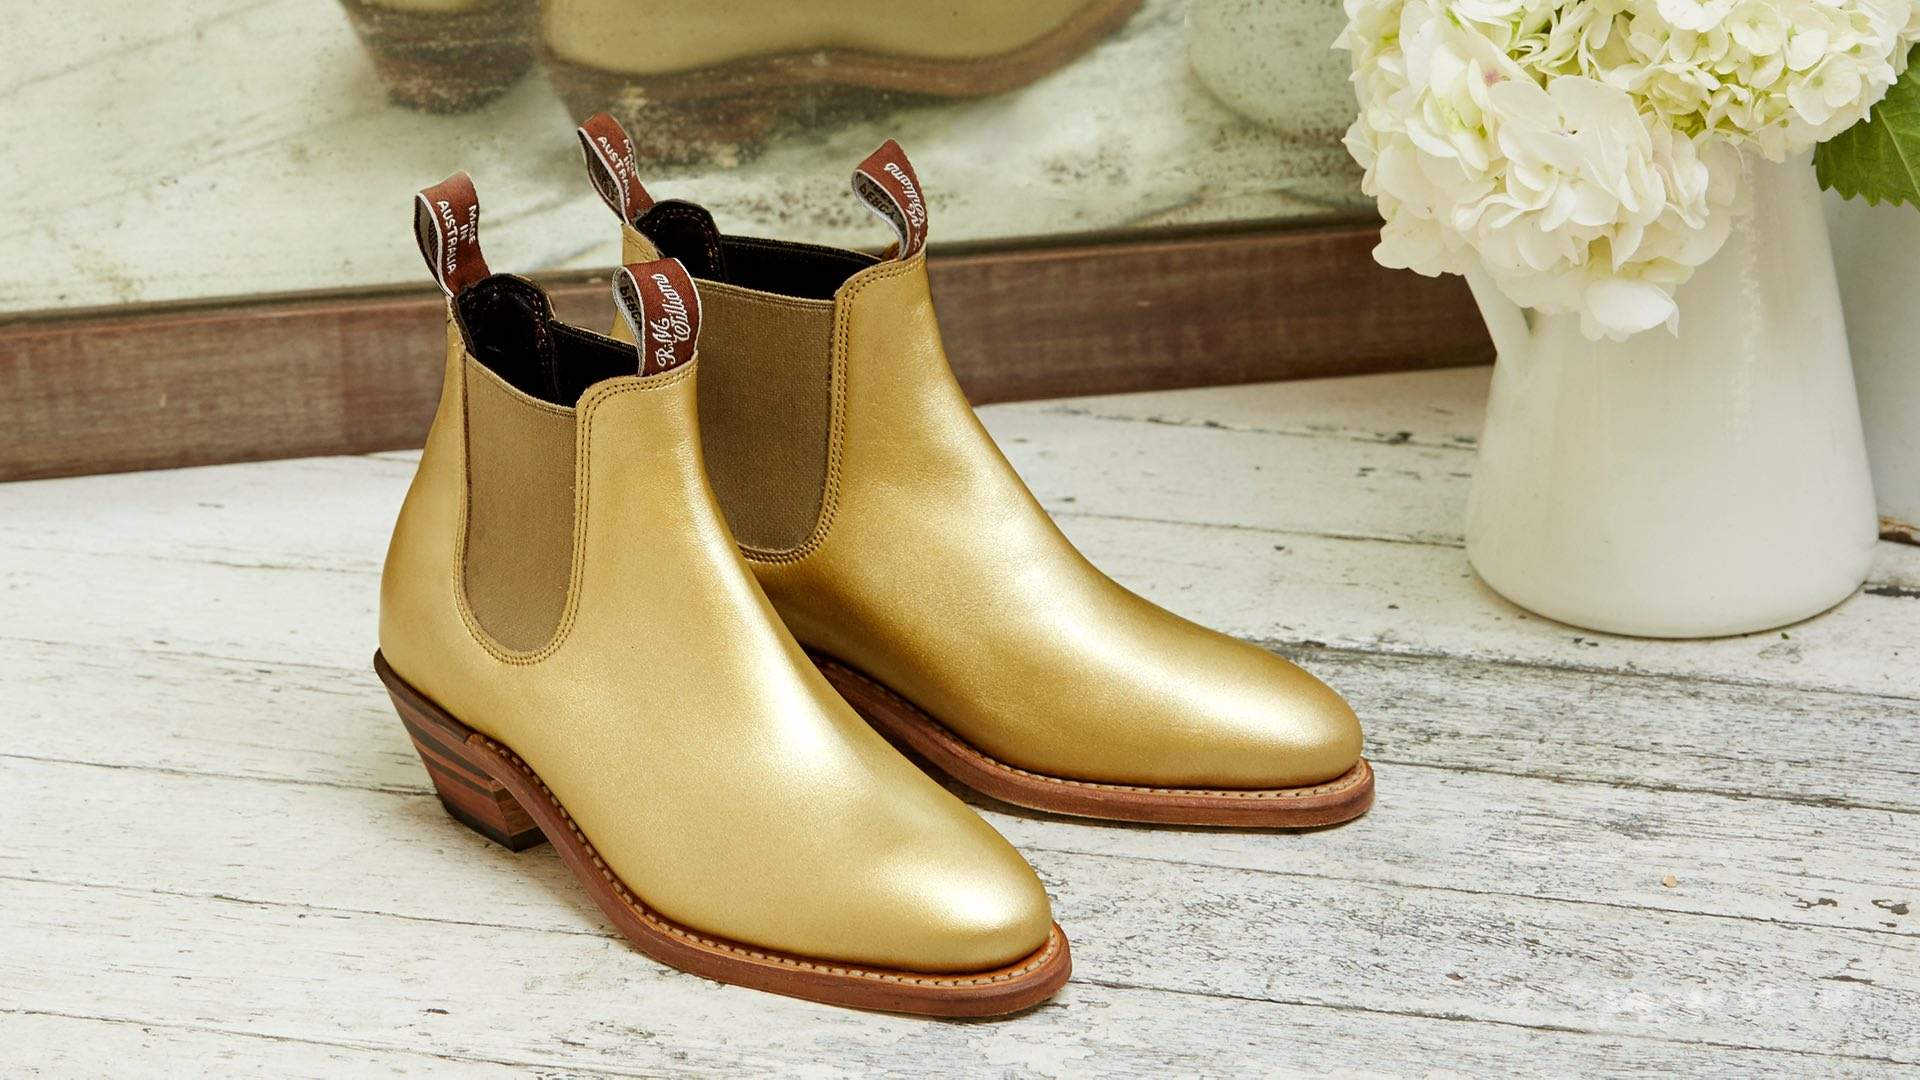 R.M. Williams Is Releasing a Second Run of Its Gold Metallic Boots